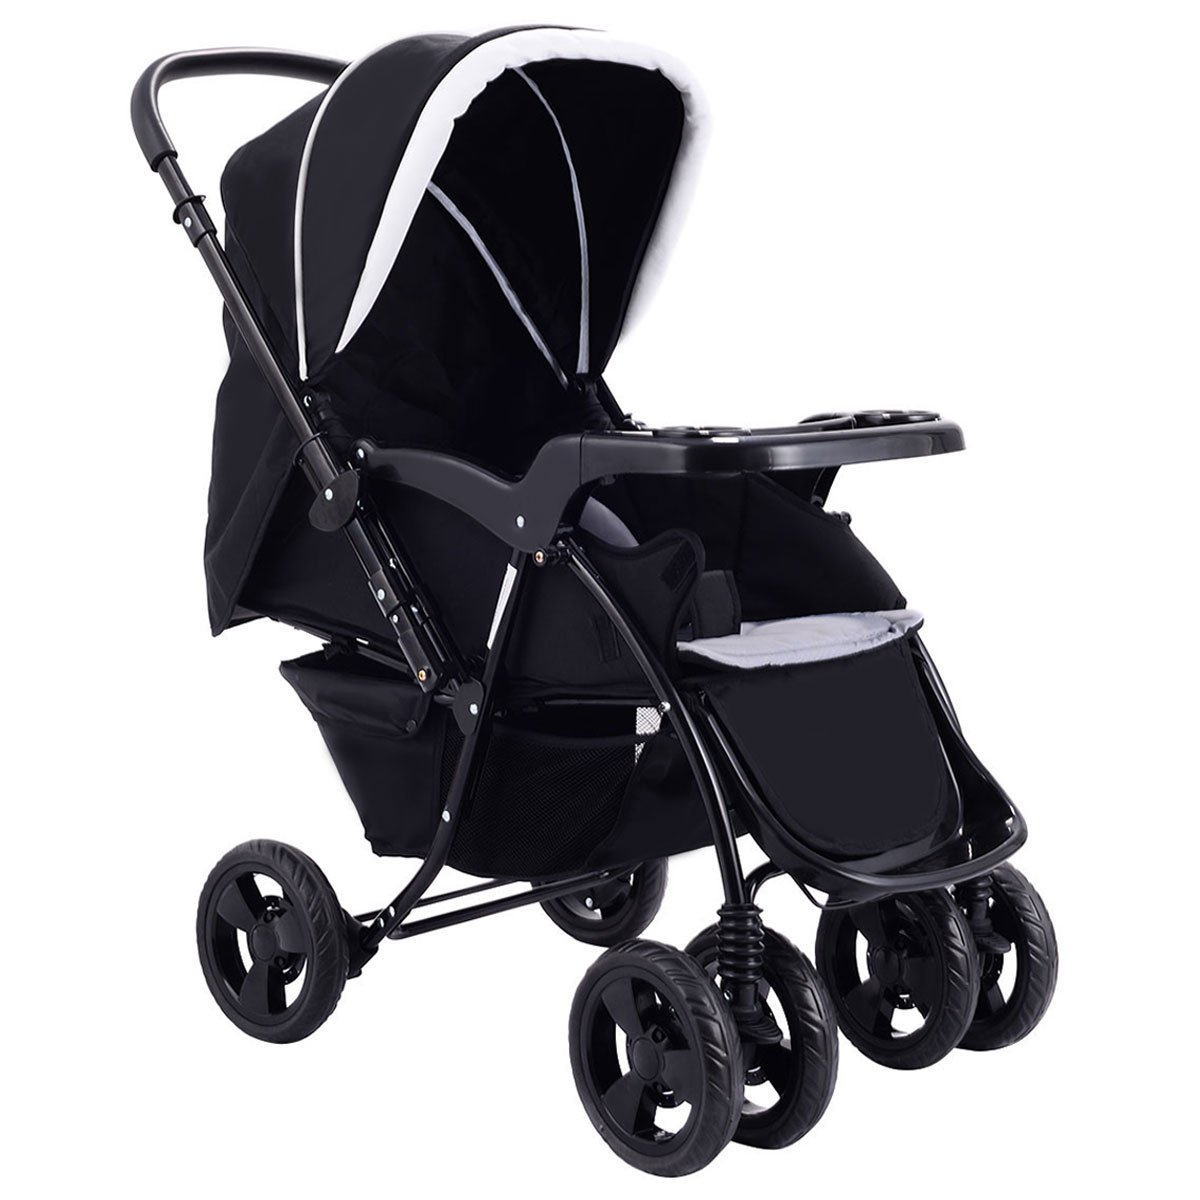 Two Way Stroller, Baby Foldable Conversable Pushchair w/5- Point Safety Harness, Sleeping Cushion, Storage Basket, Free Standing by Costzon (Sapphire Blue)